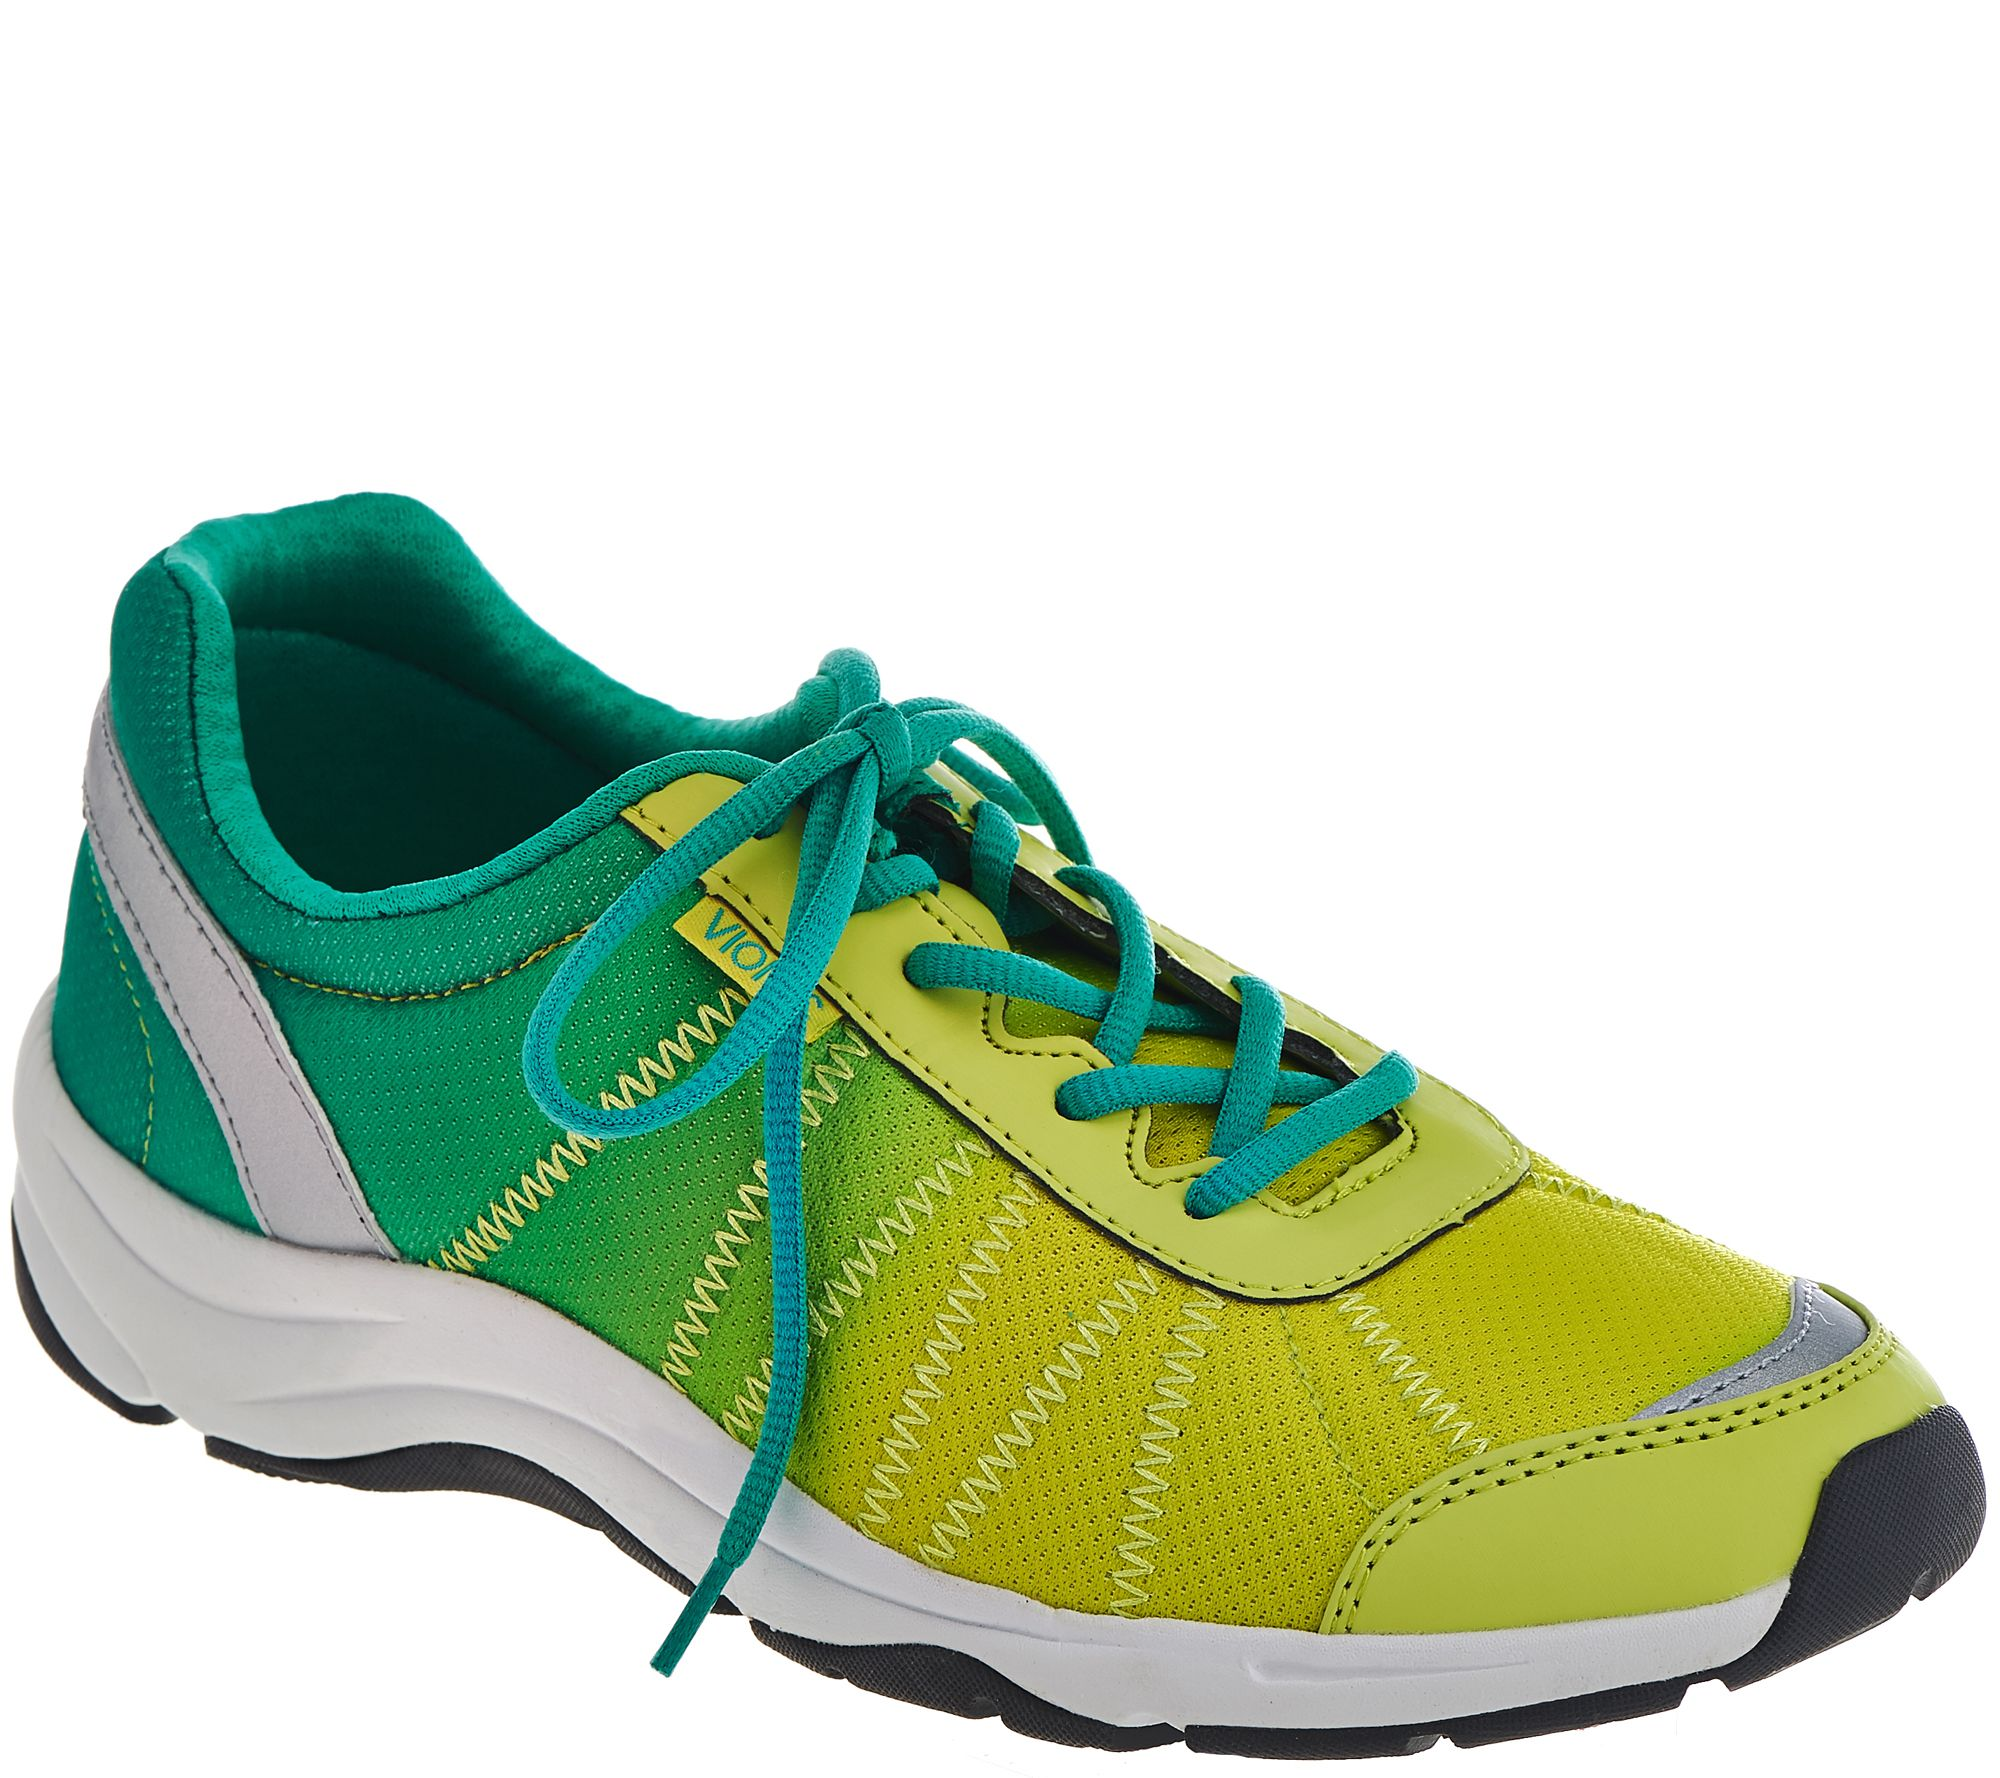 Vionic Orthotic Mesh Walking Sneakers - Alliance